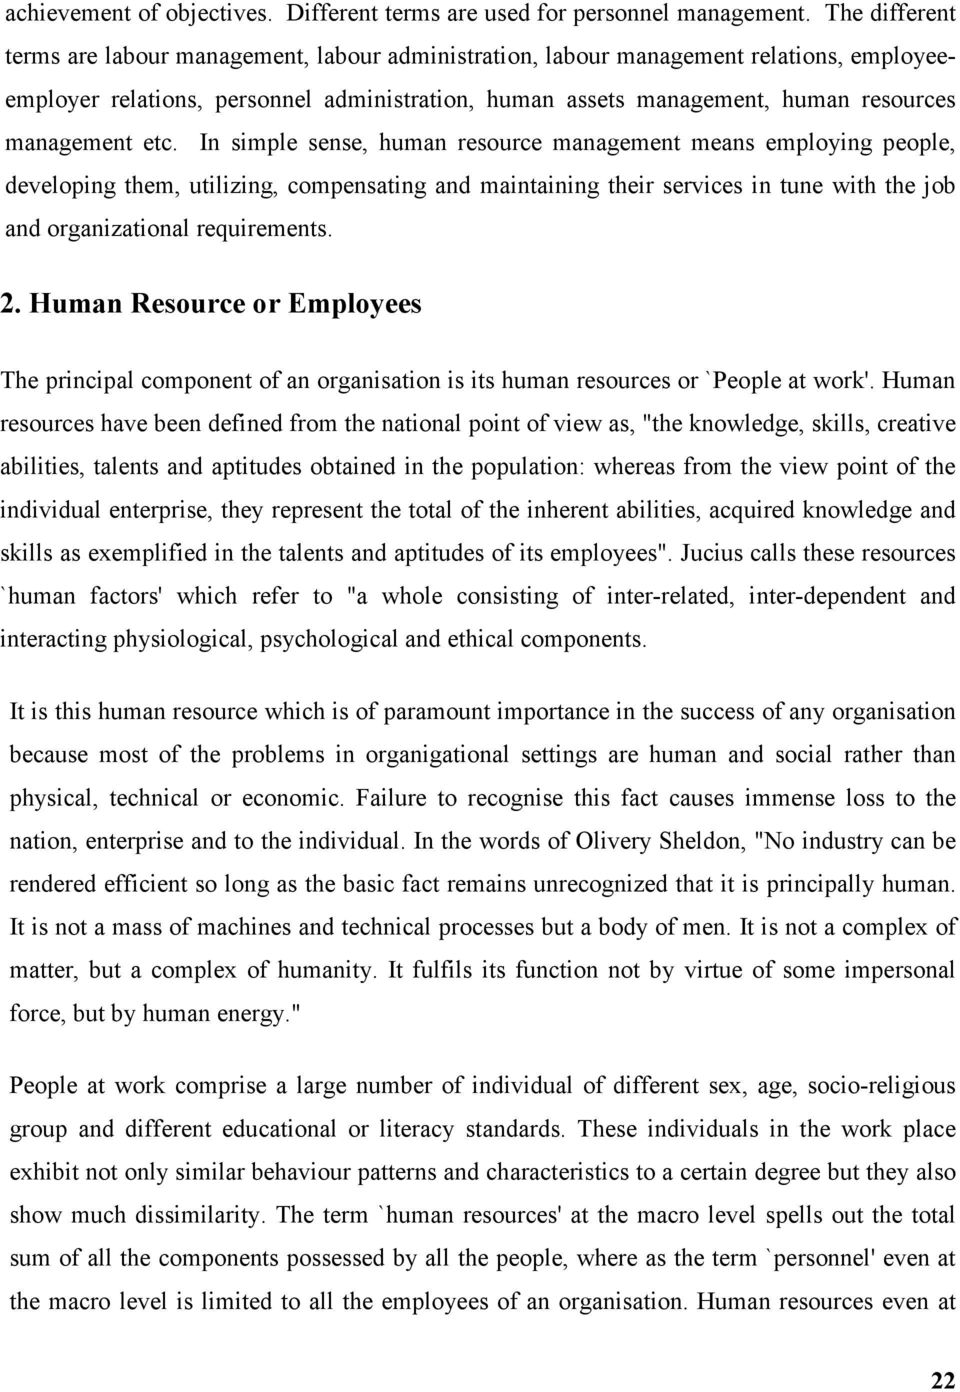 Literature Review for Human Resource Management System Study com         Chapter       Literature Review